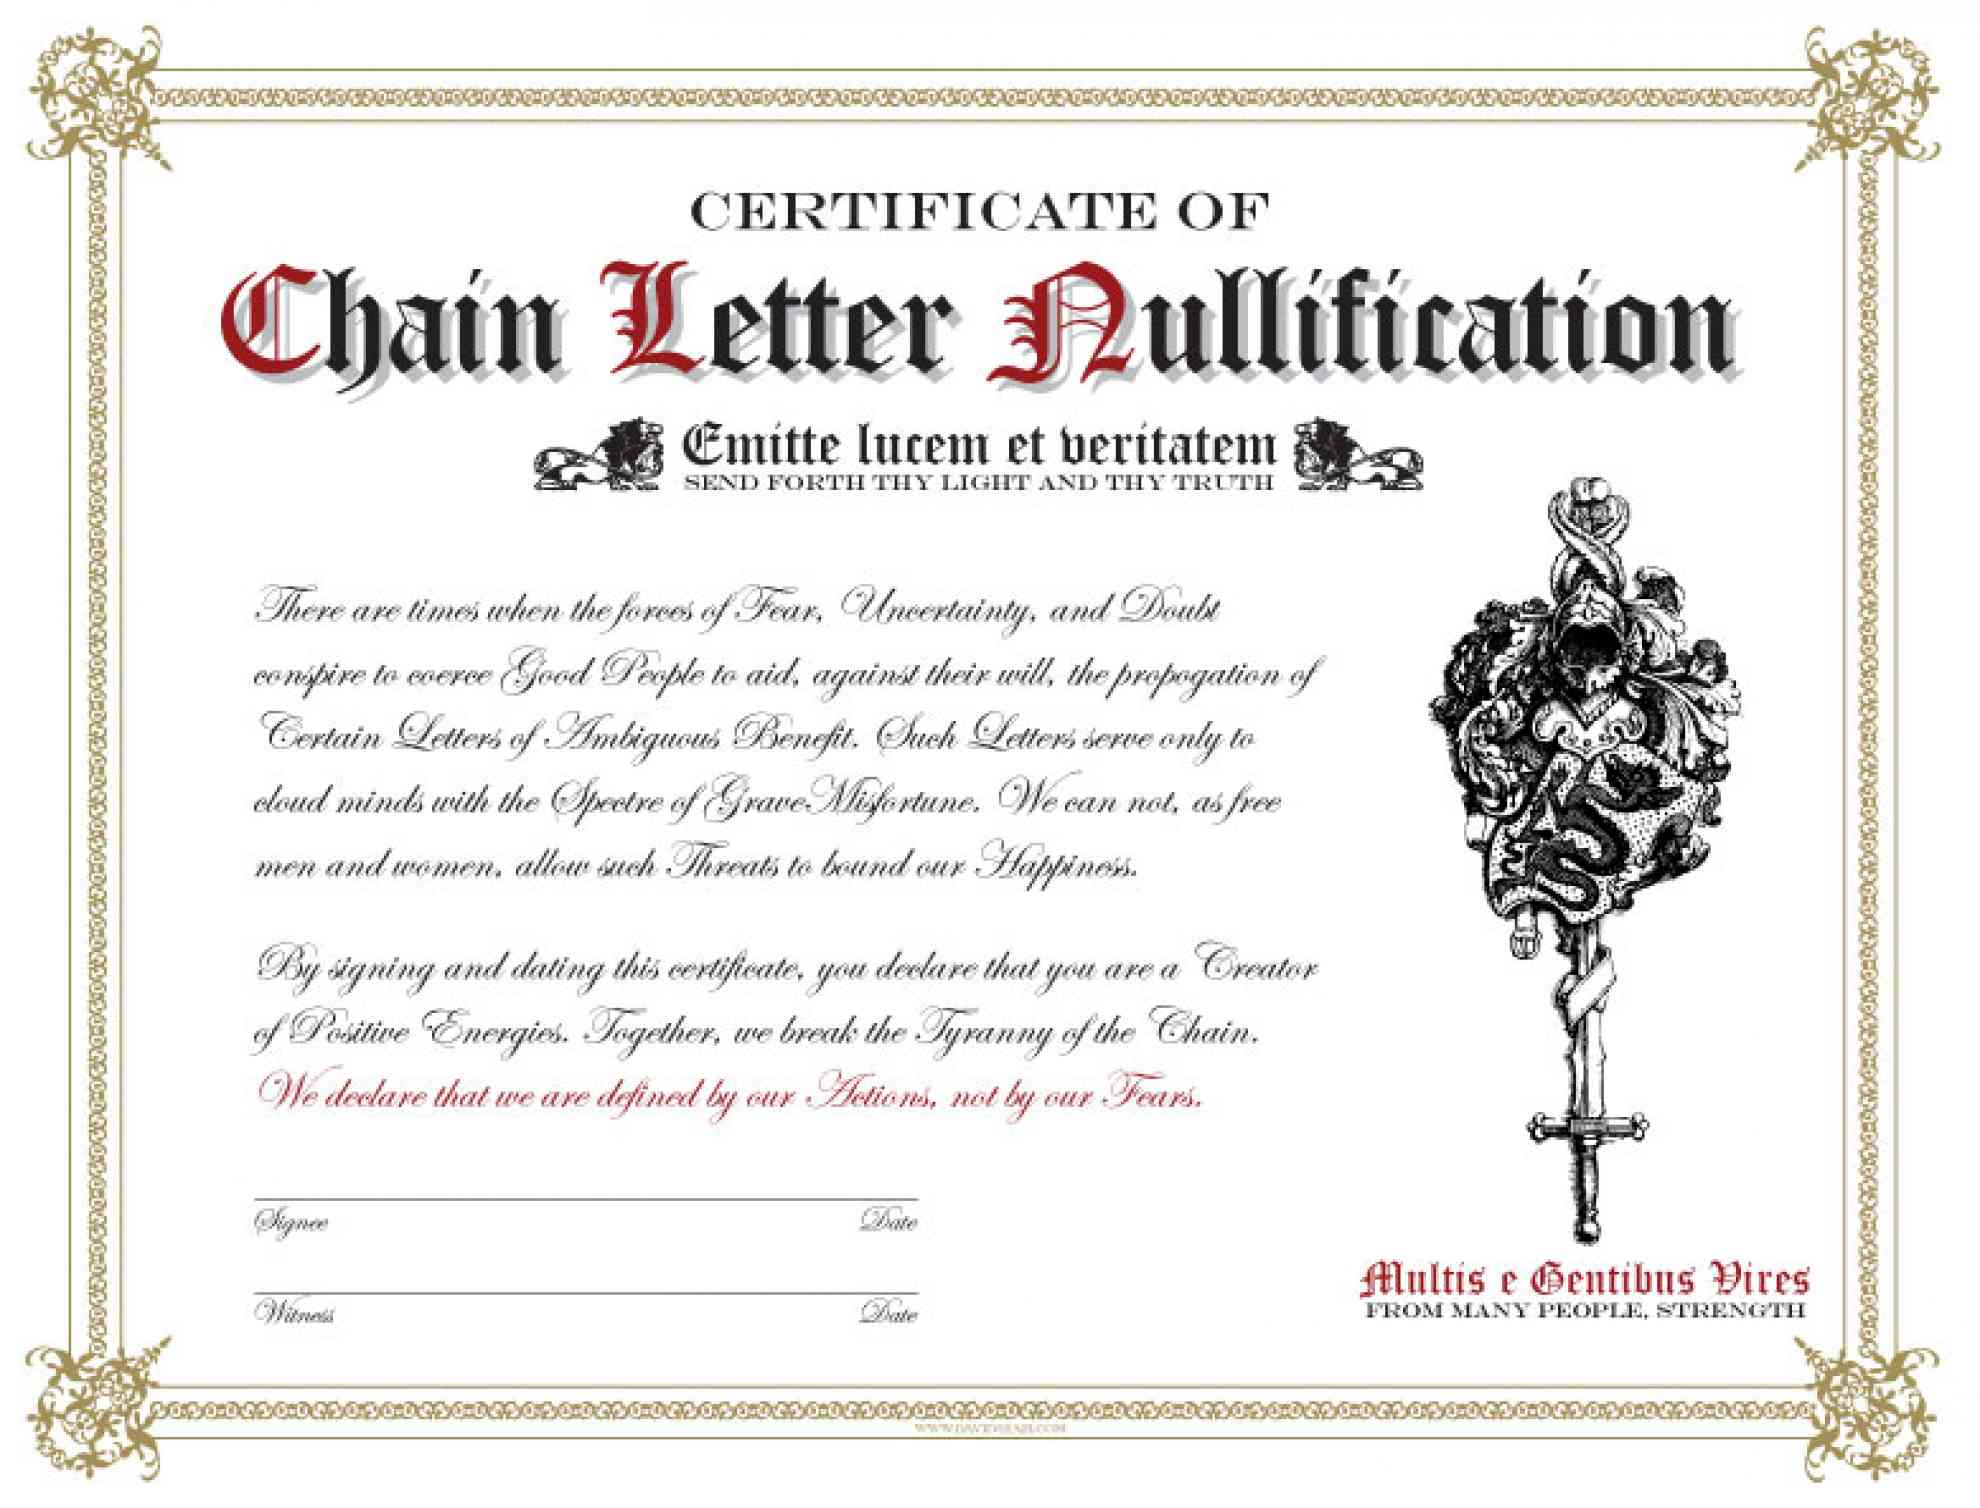 The Certificate of Chain Letter Nullification